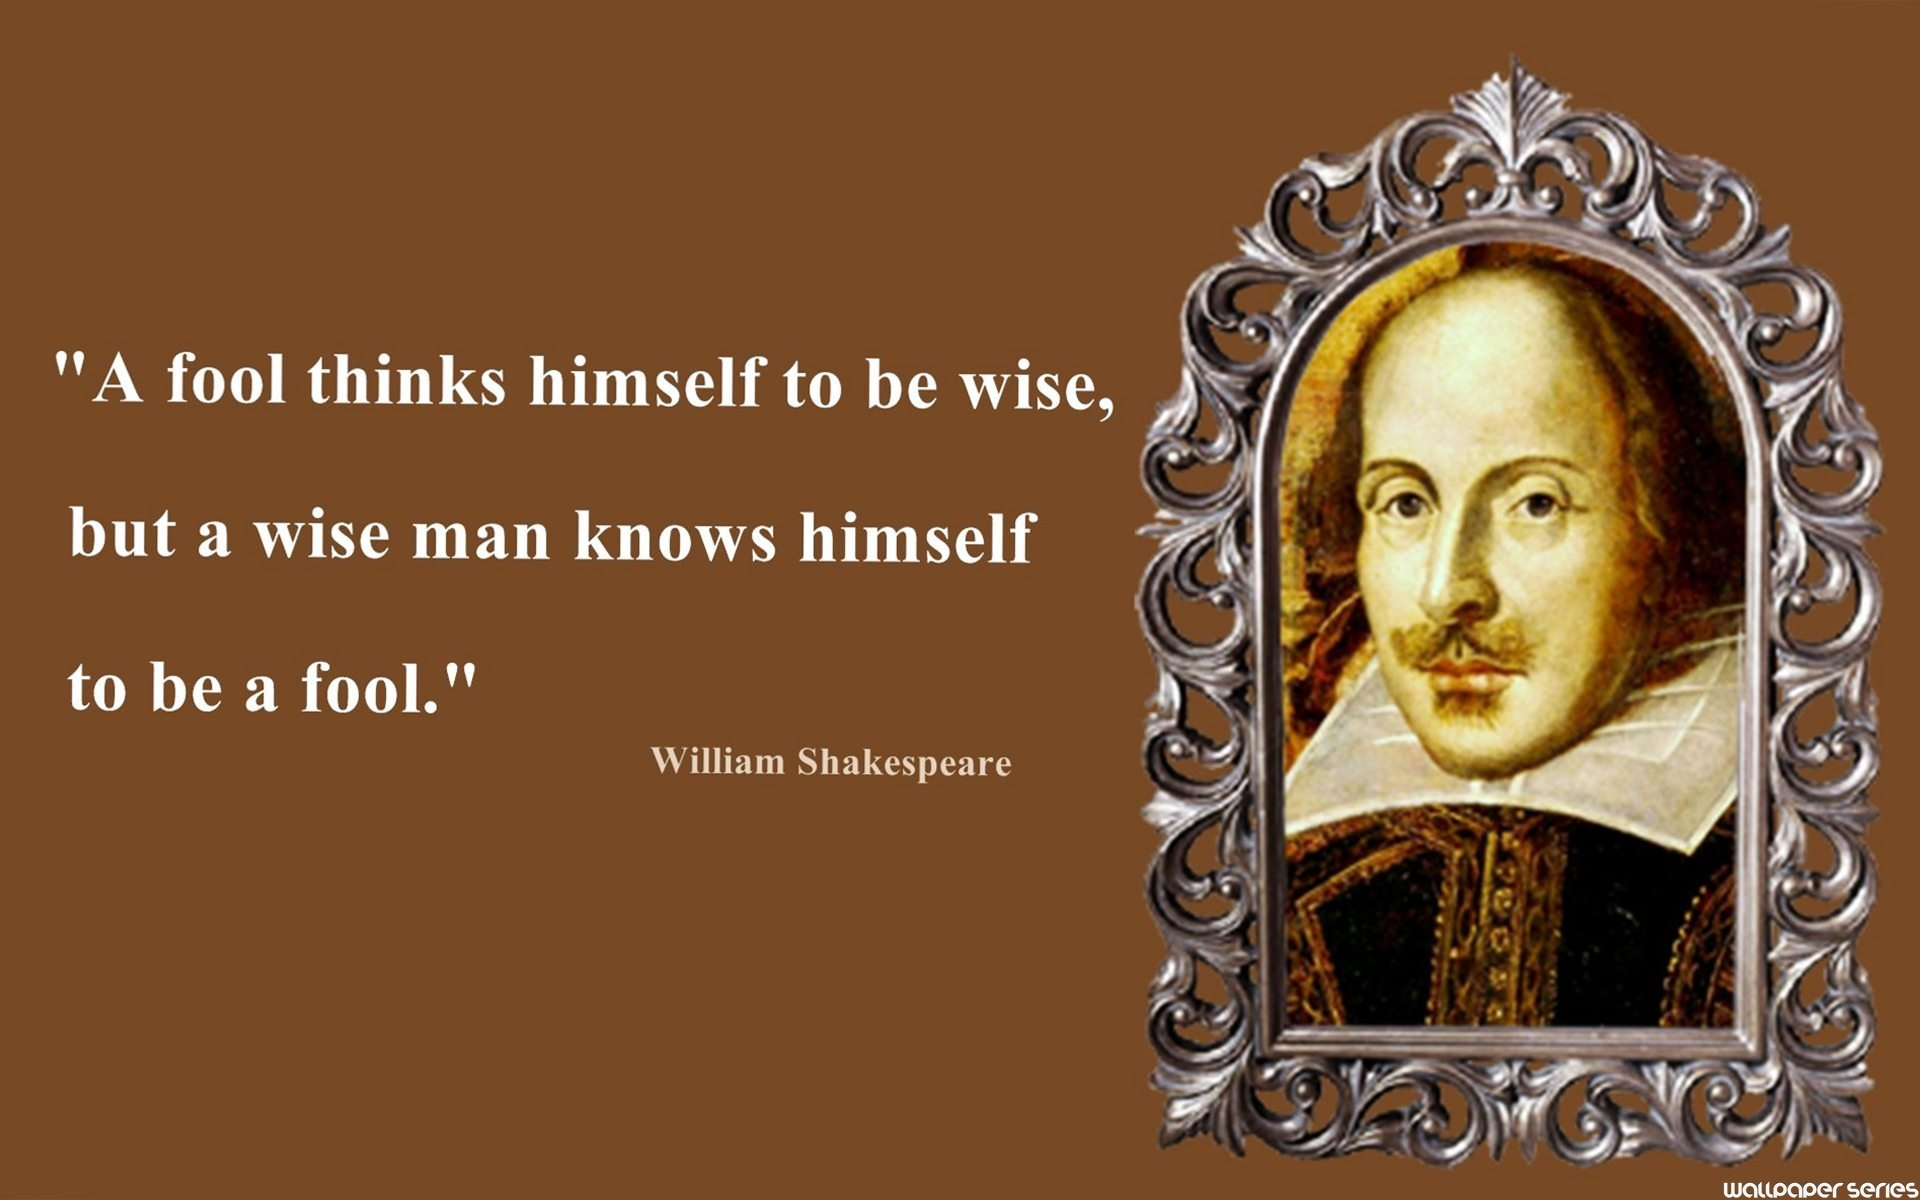 William Shakespeare Fool Thinks Quotes Wallpaper 10937   Baltana 1920x1200